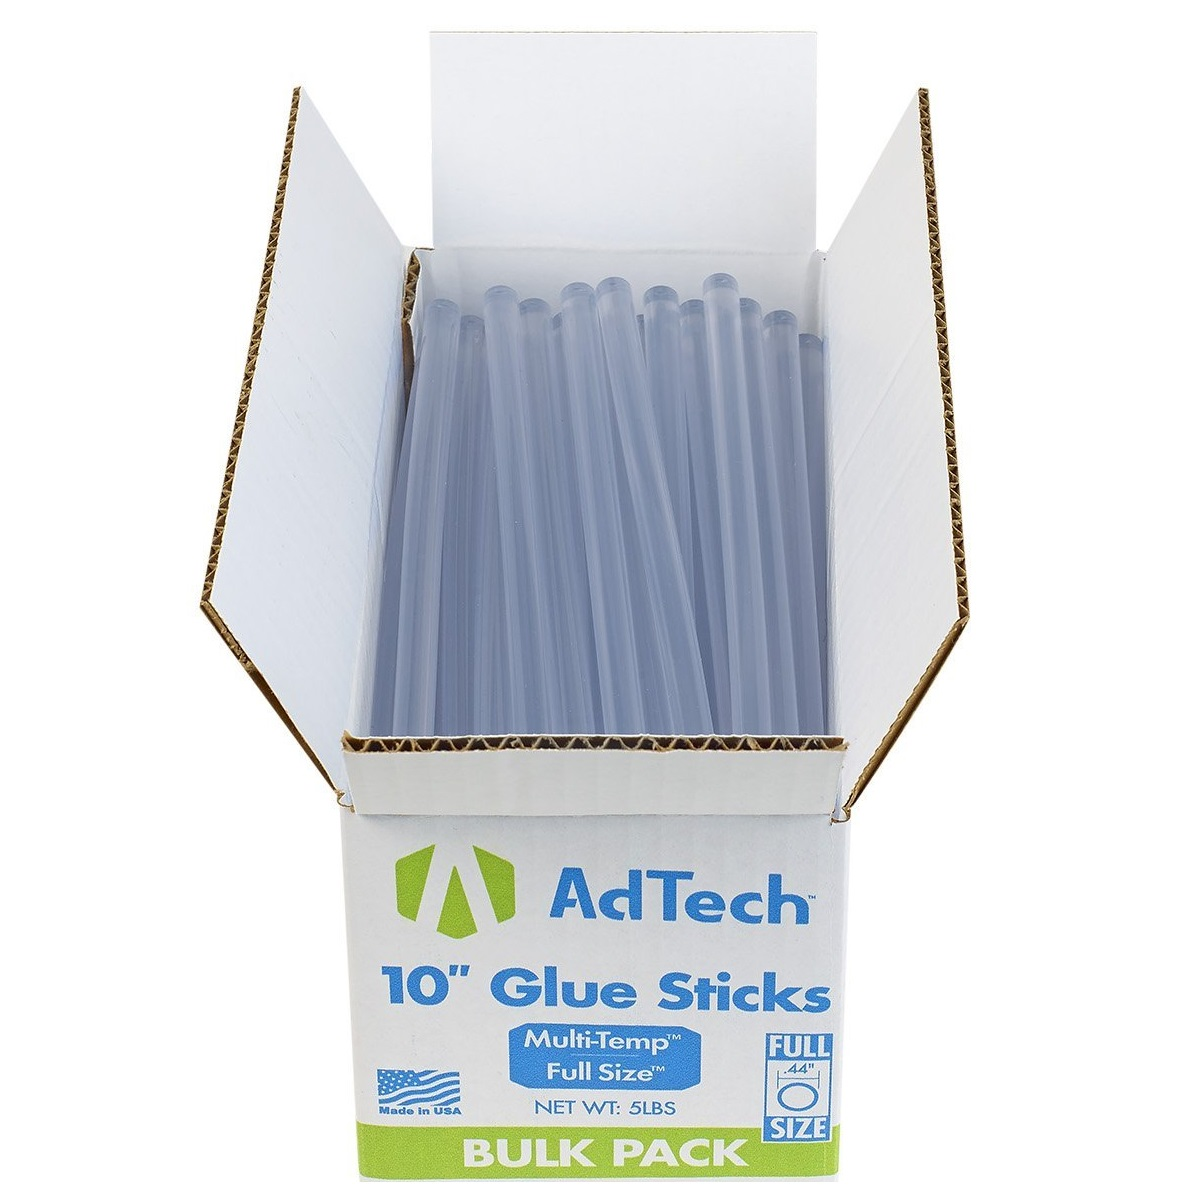 Adtech Multi-Temp Glue Sticks